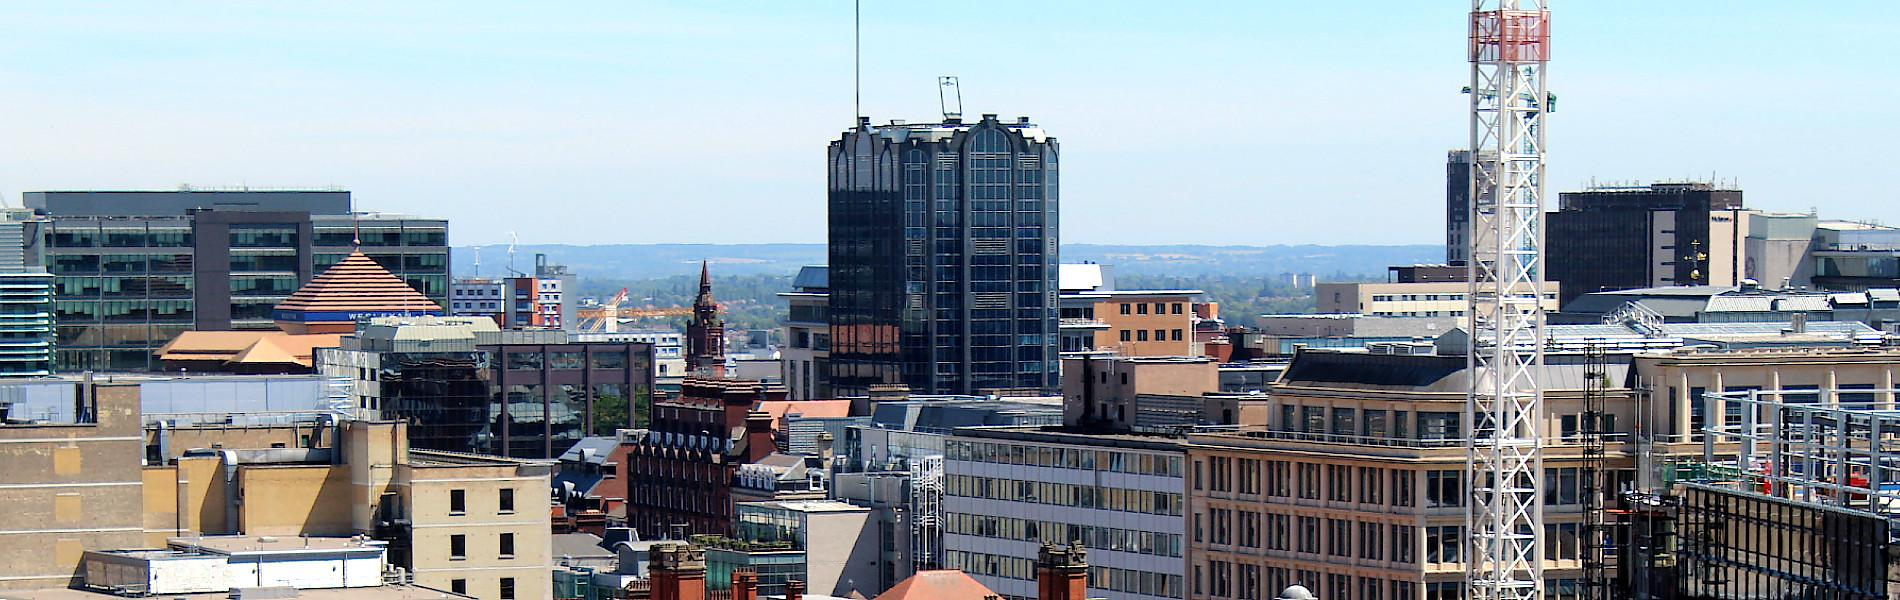 Photograph of the Birmingham City Centre skyline against a brilliant blue sky.